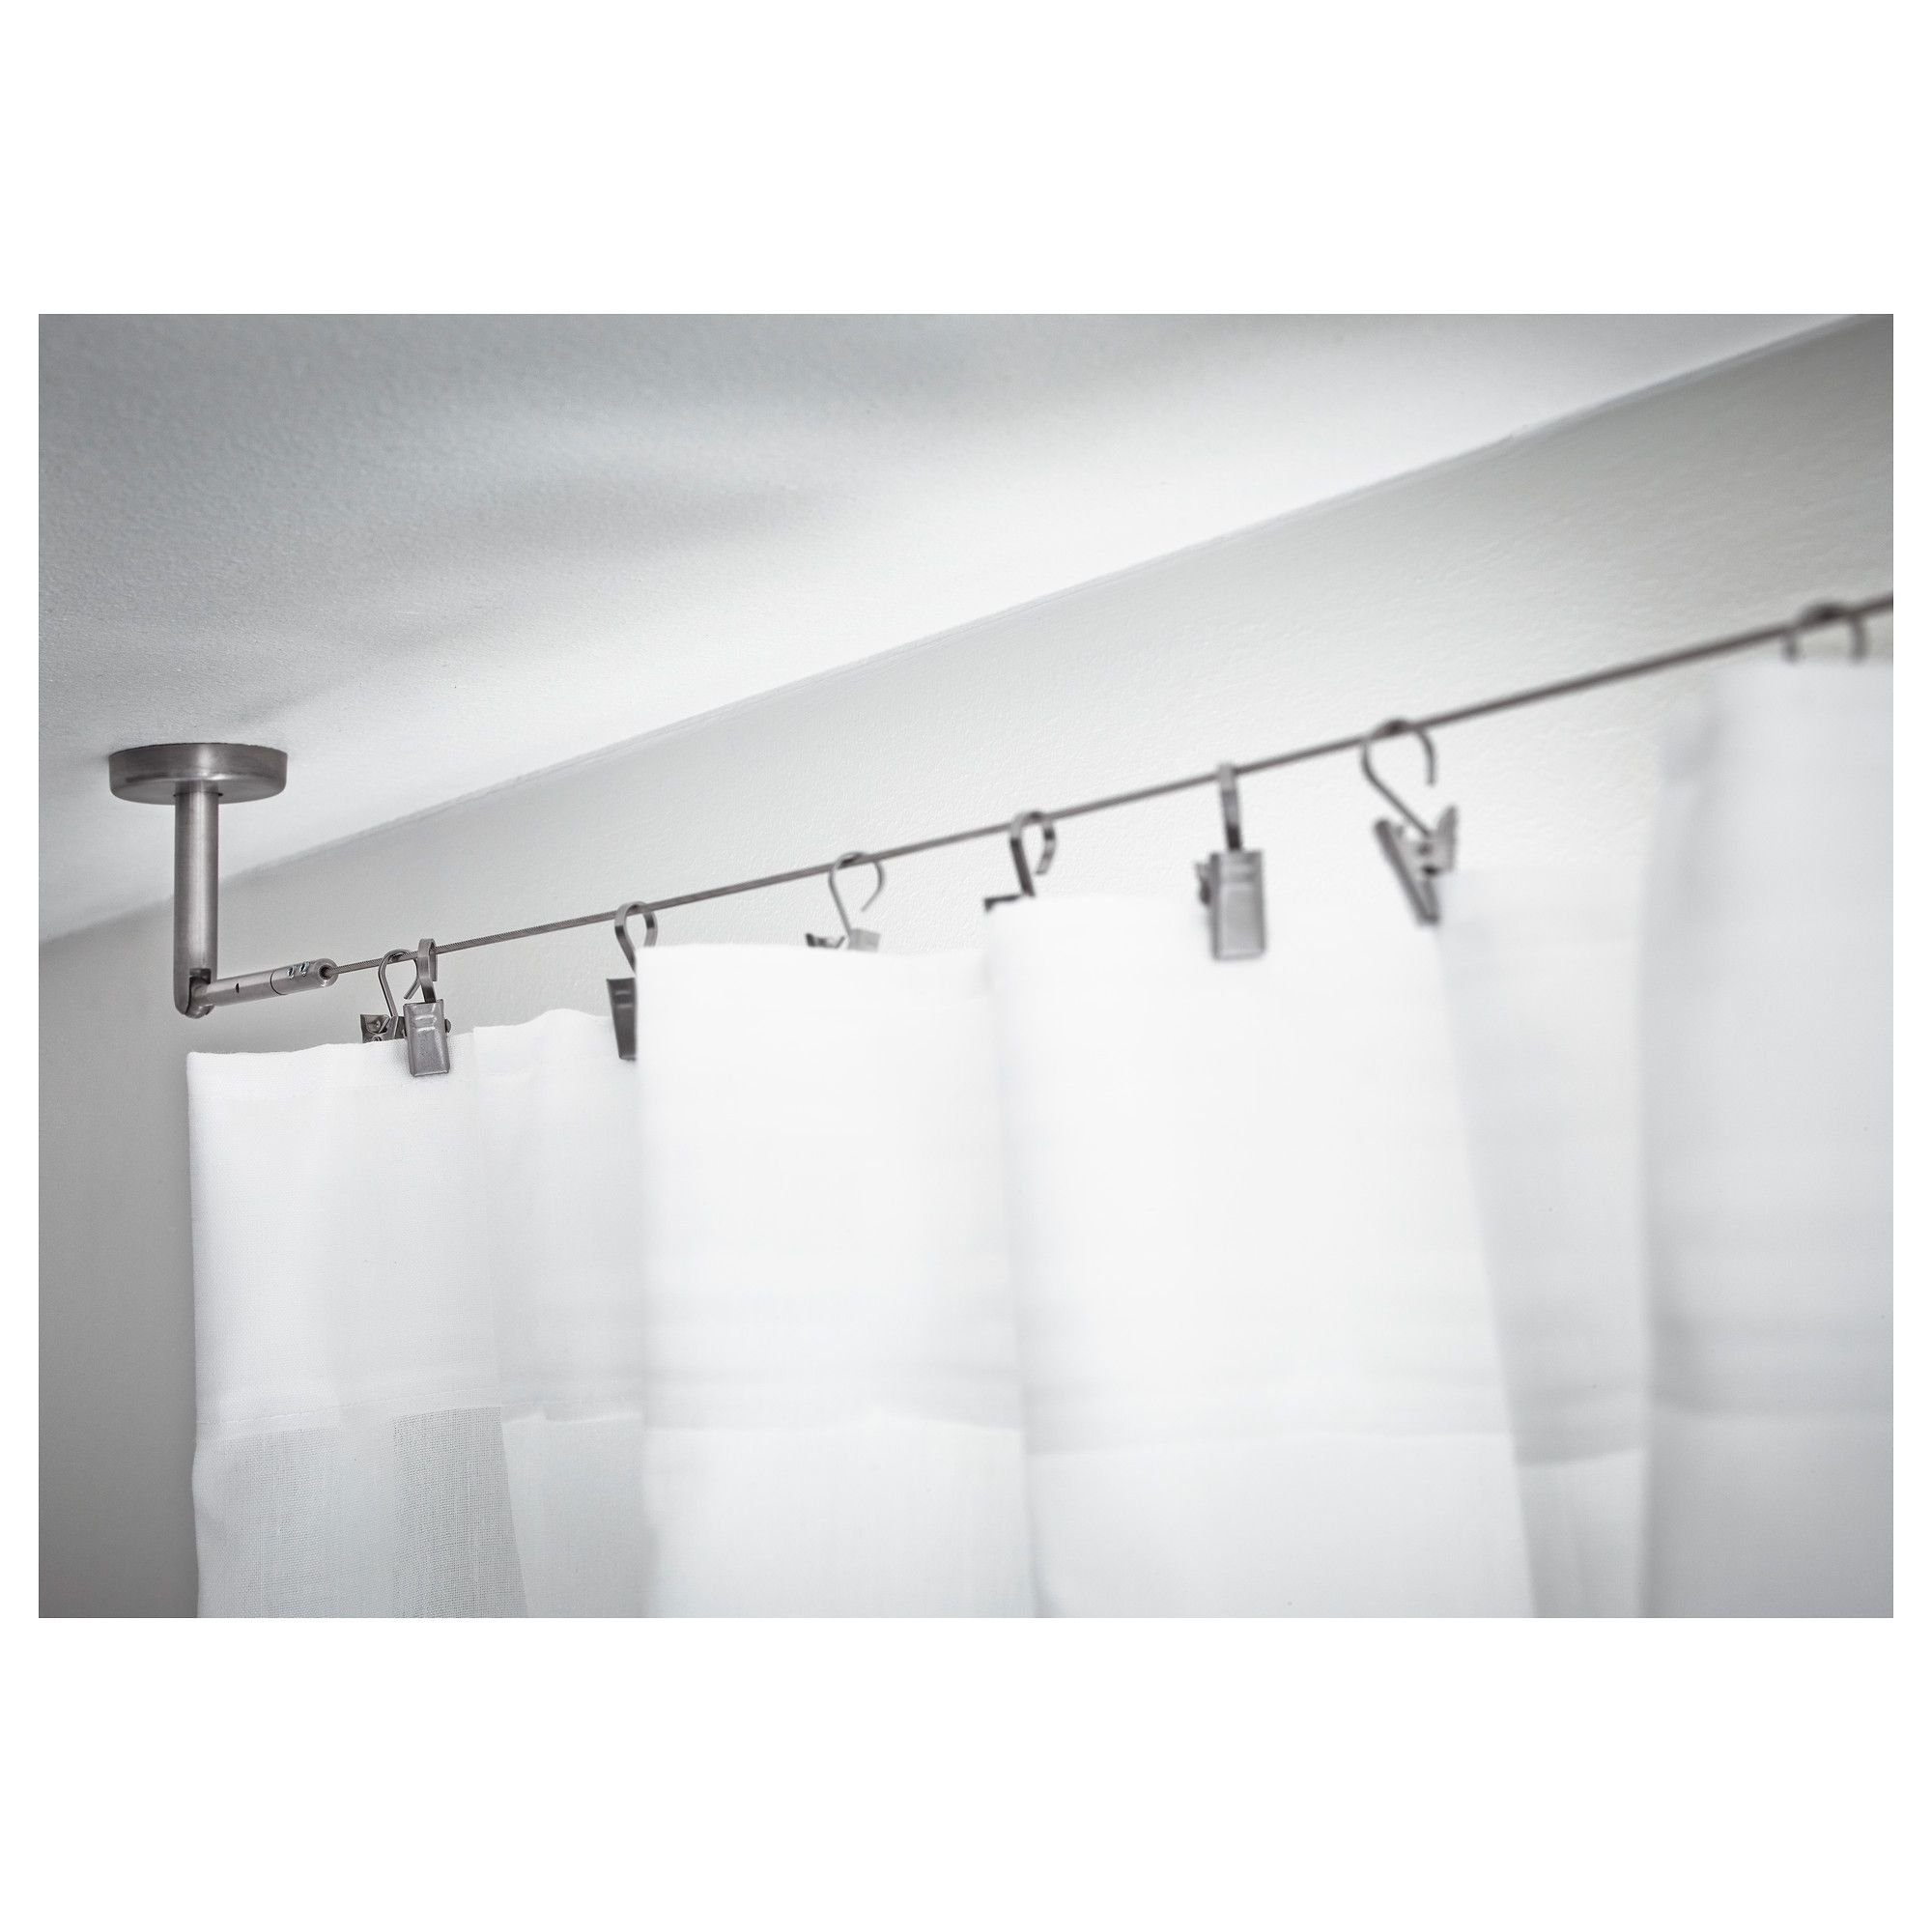 Wire Curtain Rod Shower Rods Rails Room Divider